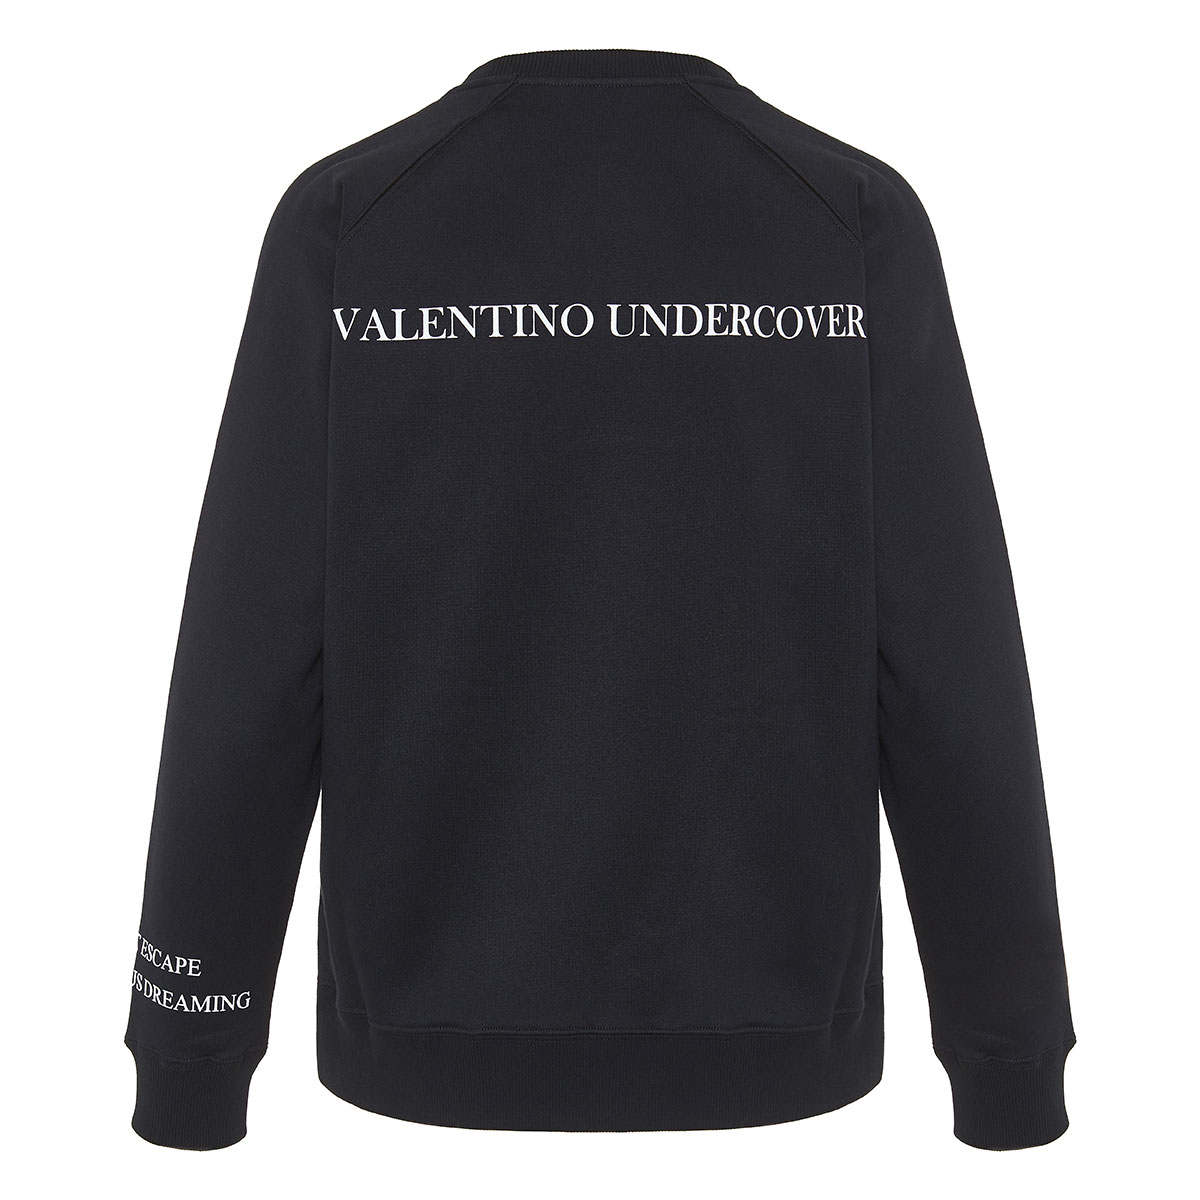 x Undercover printed cotton sweatshirt